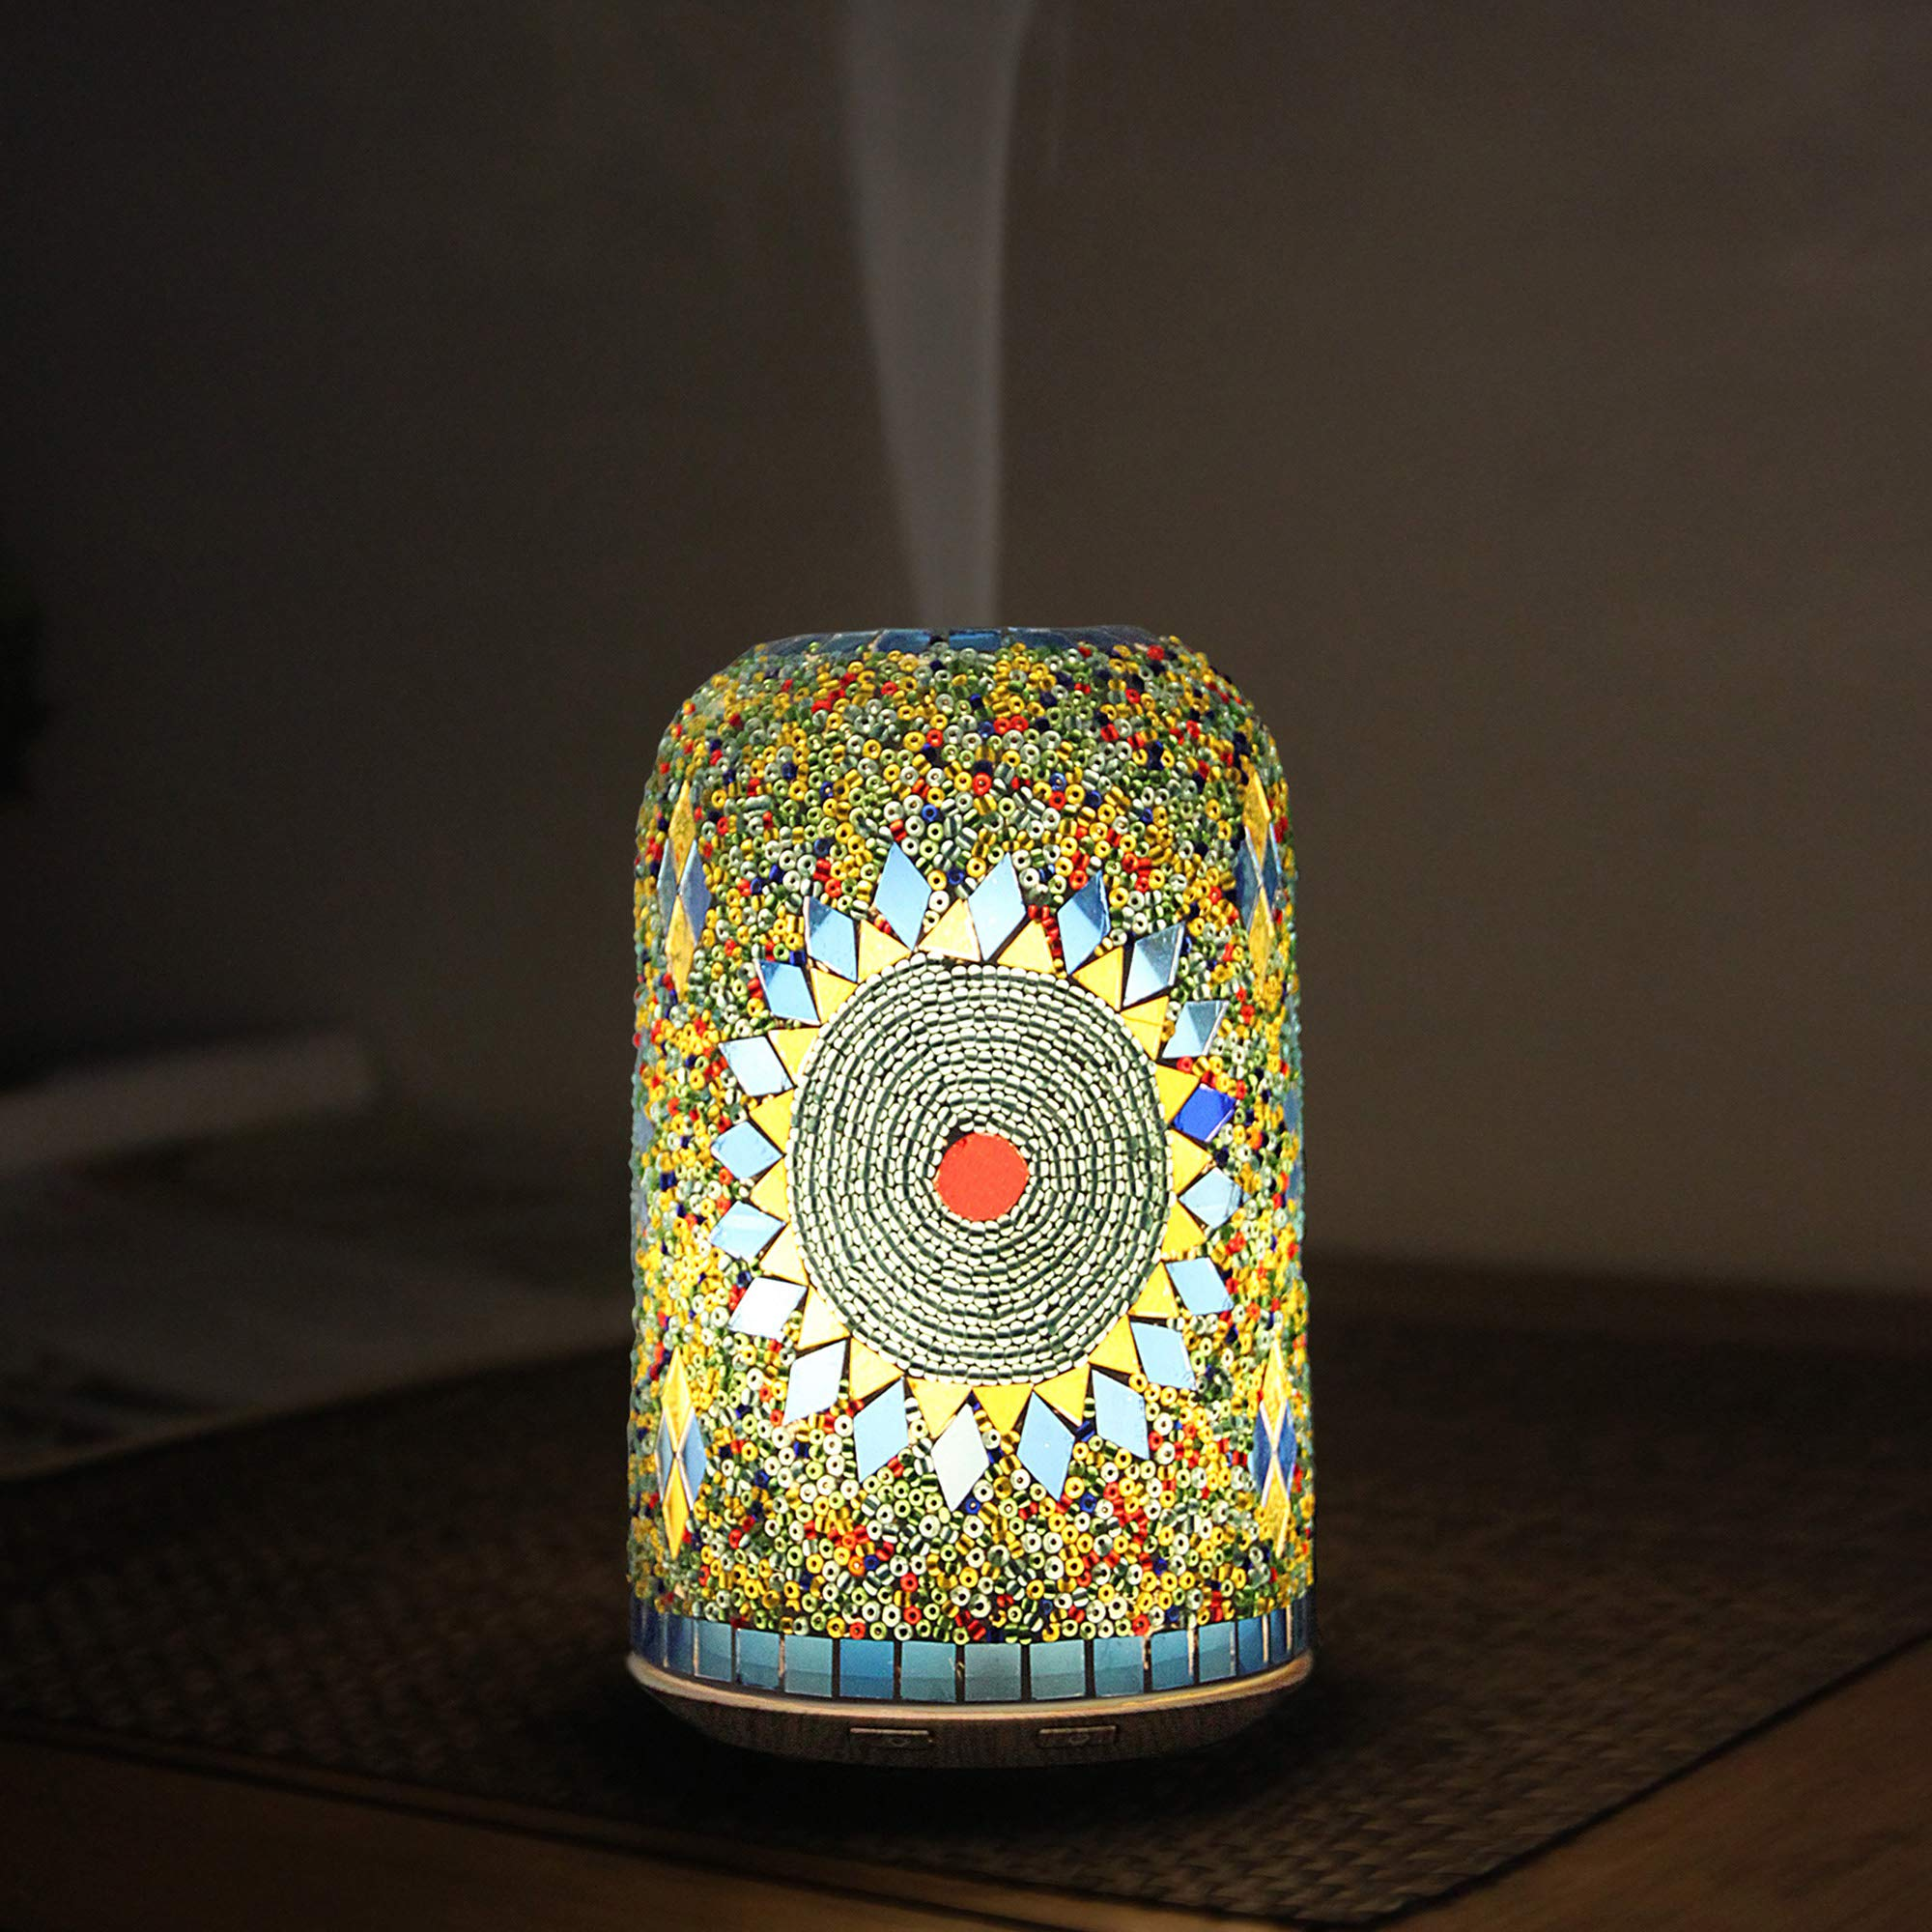 Vyaime Hand-inlay Essential Oil Diffuser Handmade Glass Mosaic Decoration, Magic 7 Color LED Lights Ultrasonic Aromatherapy Auto Shut-off with Intermittent Mode Humidifier for Office Home(Sunflower)